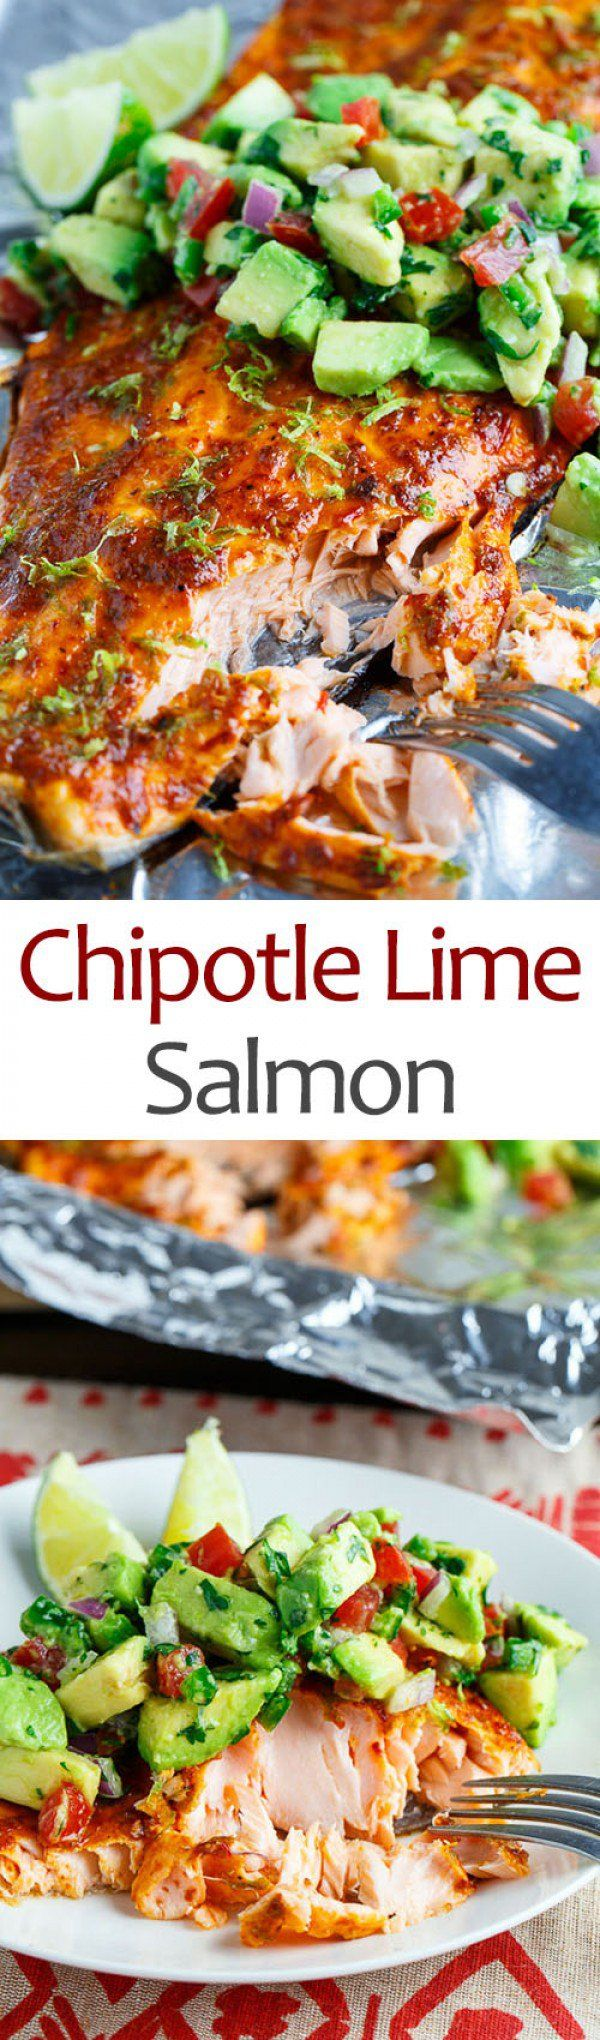 Get the recipe ♥ Chipotle Lime Salmon @recipes_to_go